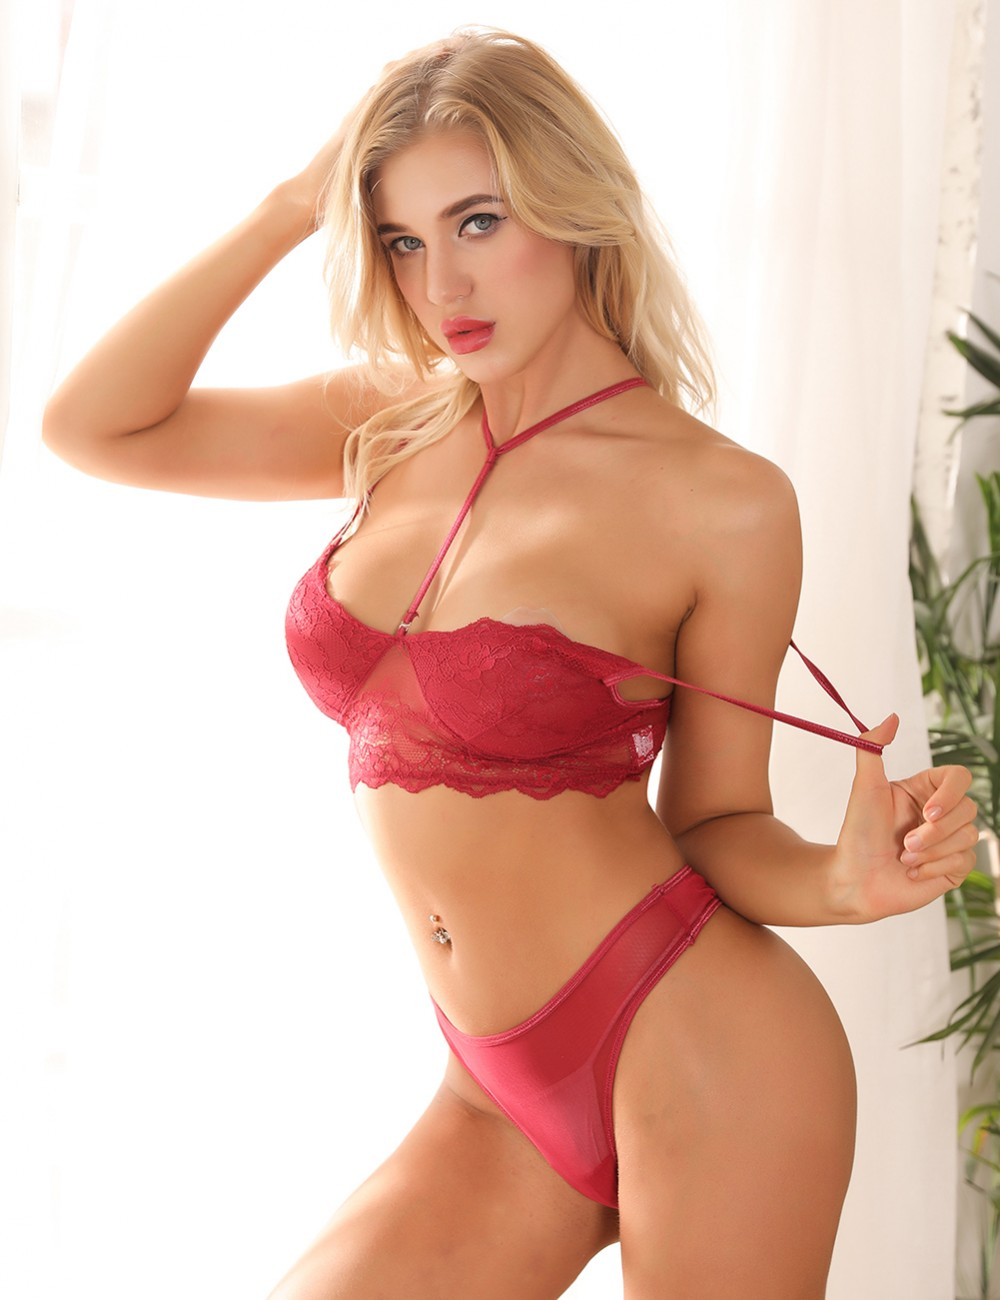 Versatile Wine Red Floral Lace Bra Suits Strappy Neck Spring Desires